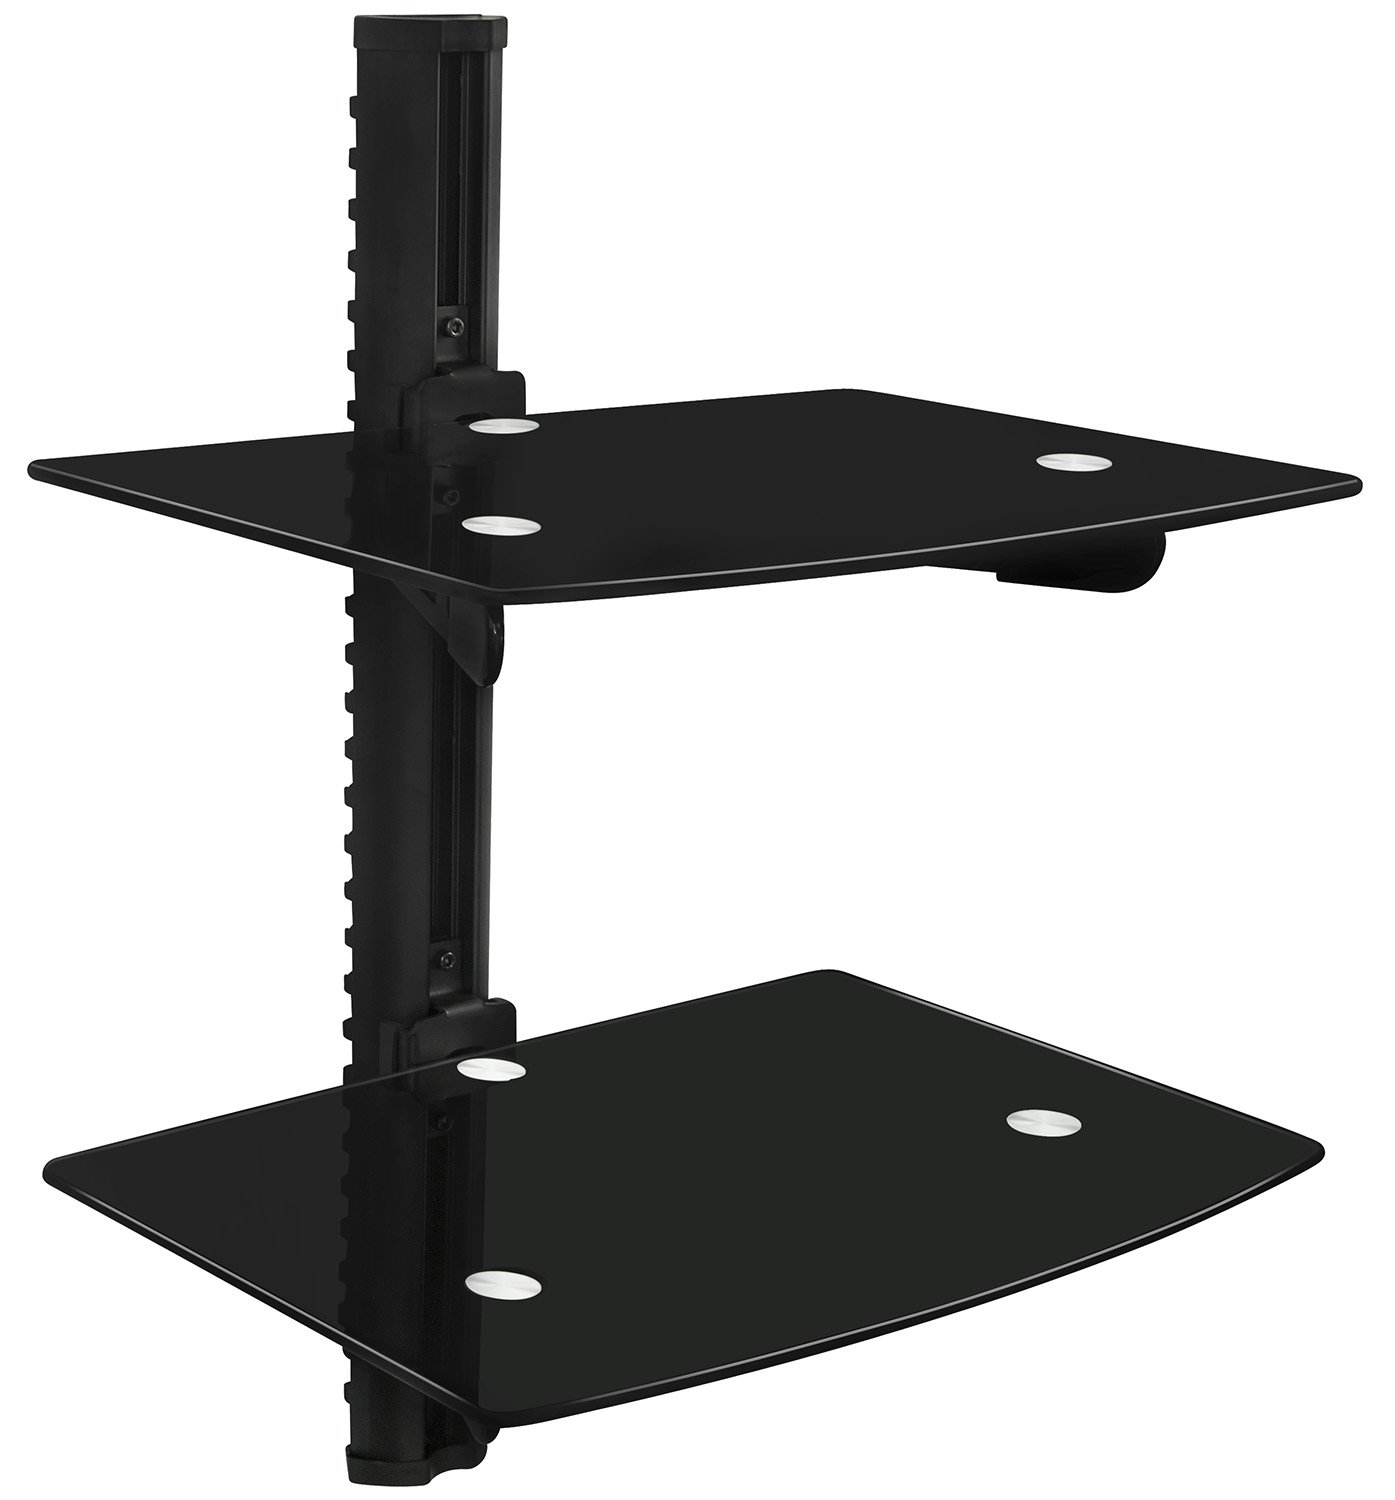 db a components qg to upto for dual v universal shelves qualgear wall shelf black mount blk